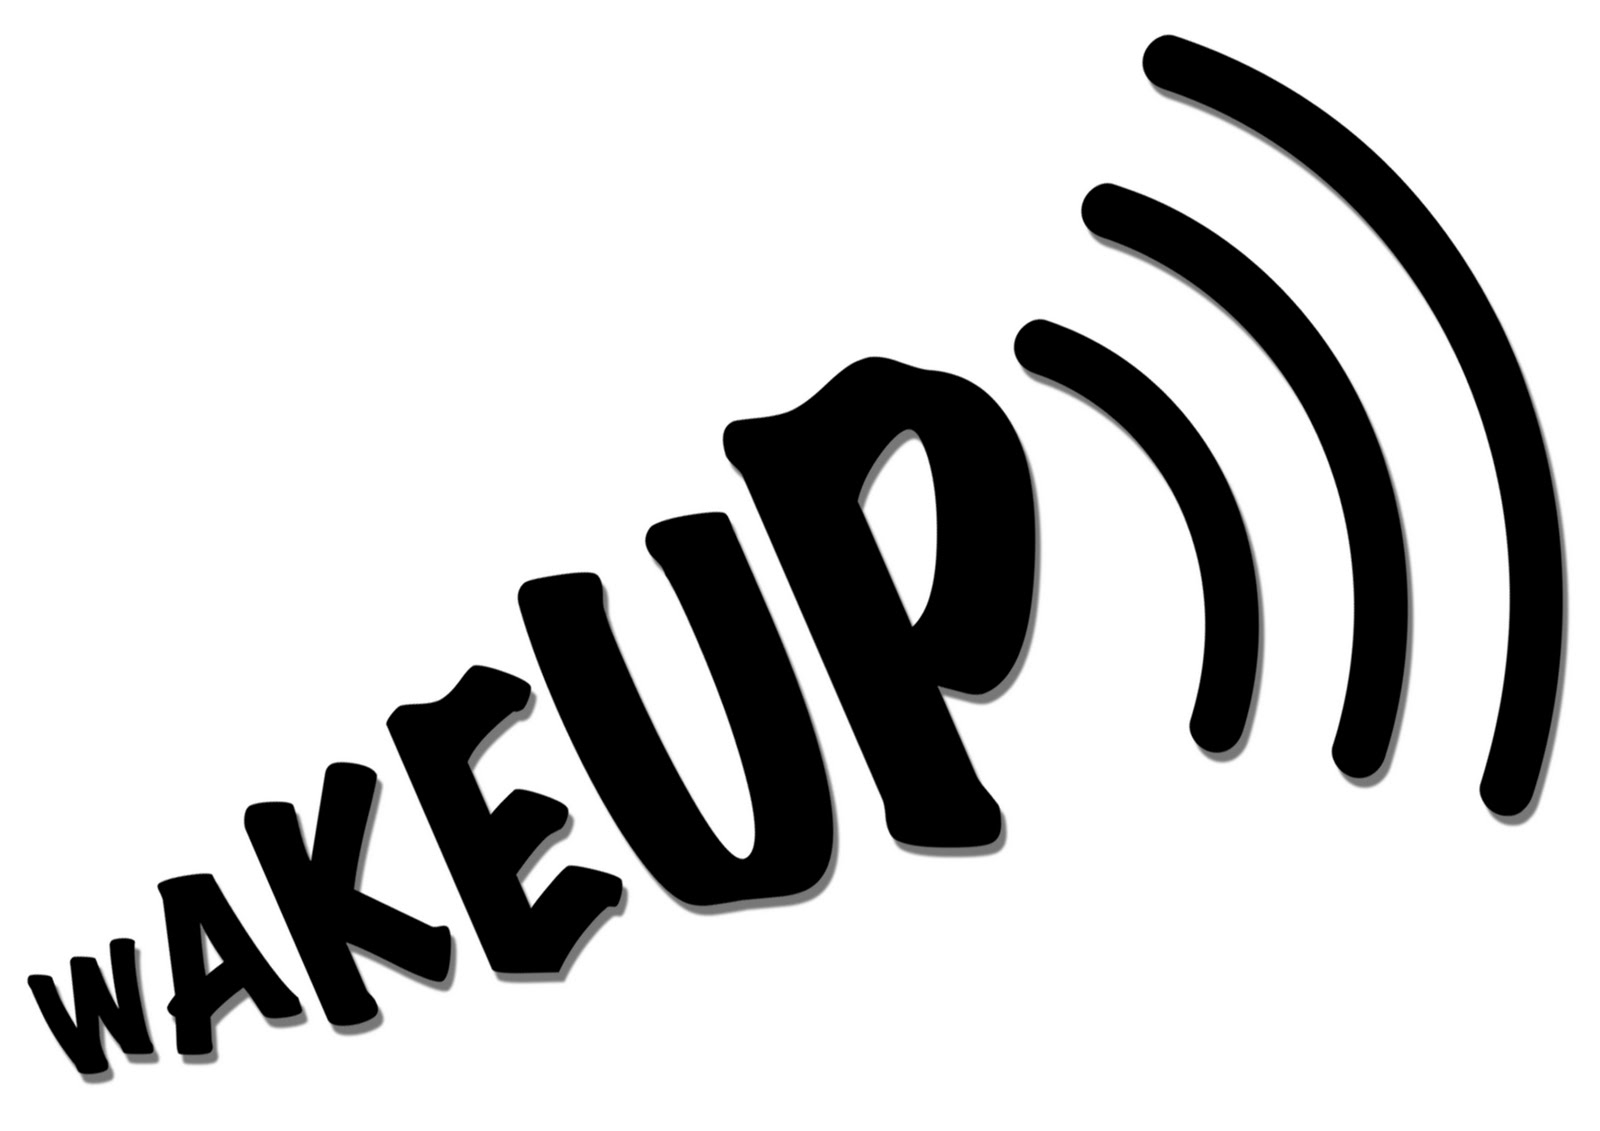 Wake up call free clipart svg black and white library Free Wake Up, Download Free Clip Art, Free Clip Art on ... svg black and white library